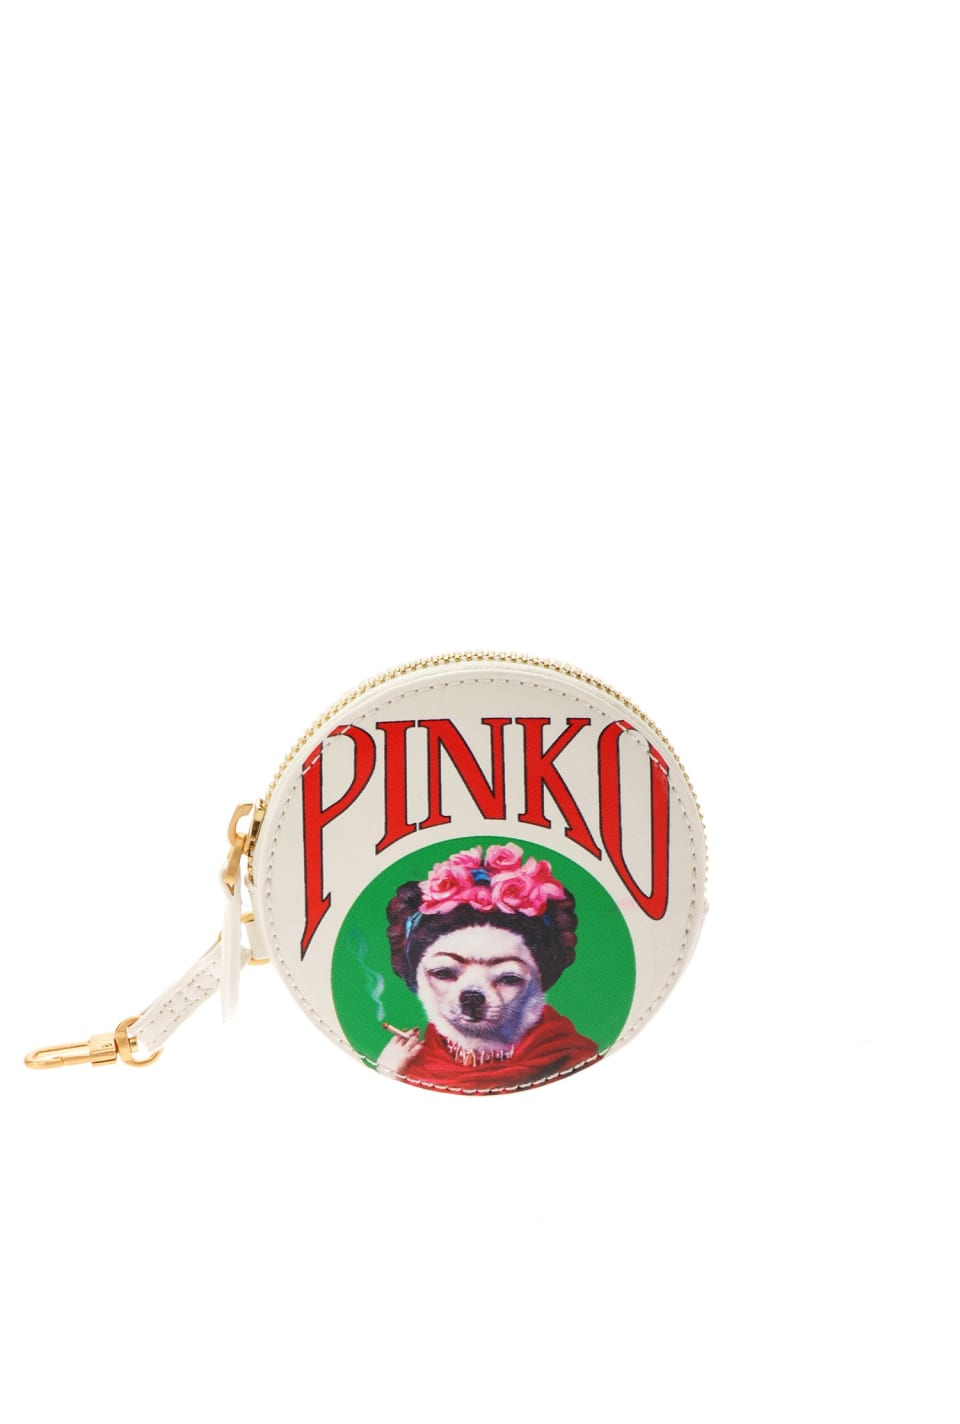 PINKO x Lucia Heffernan coin purse - Pinko